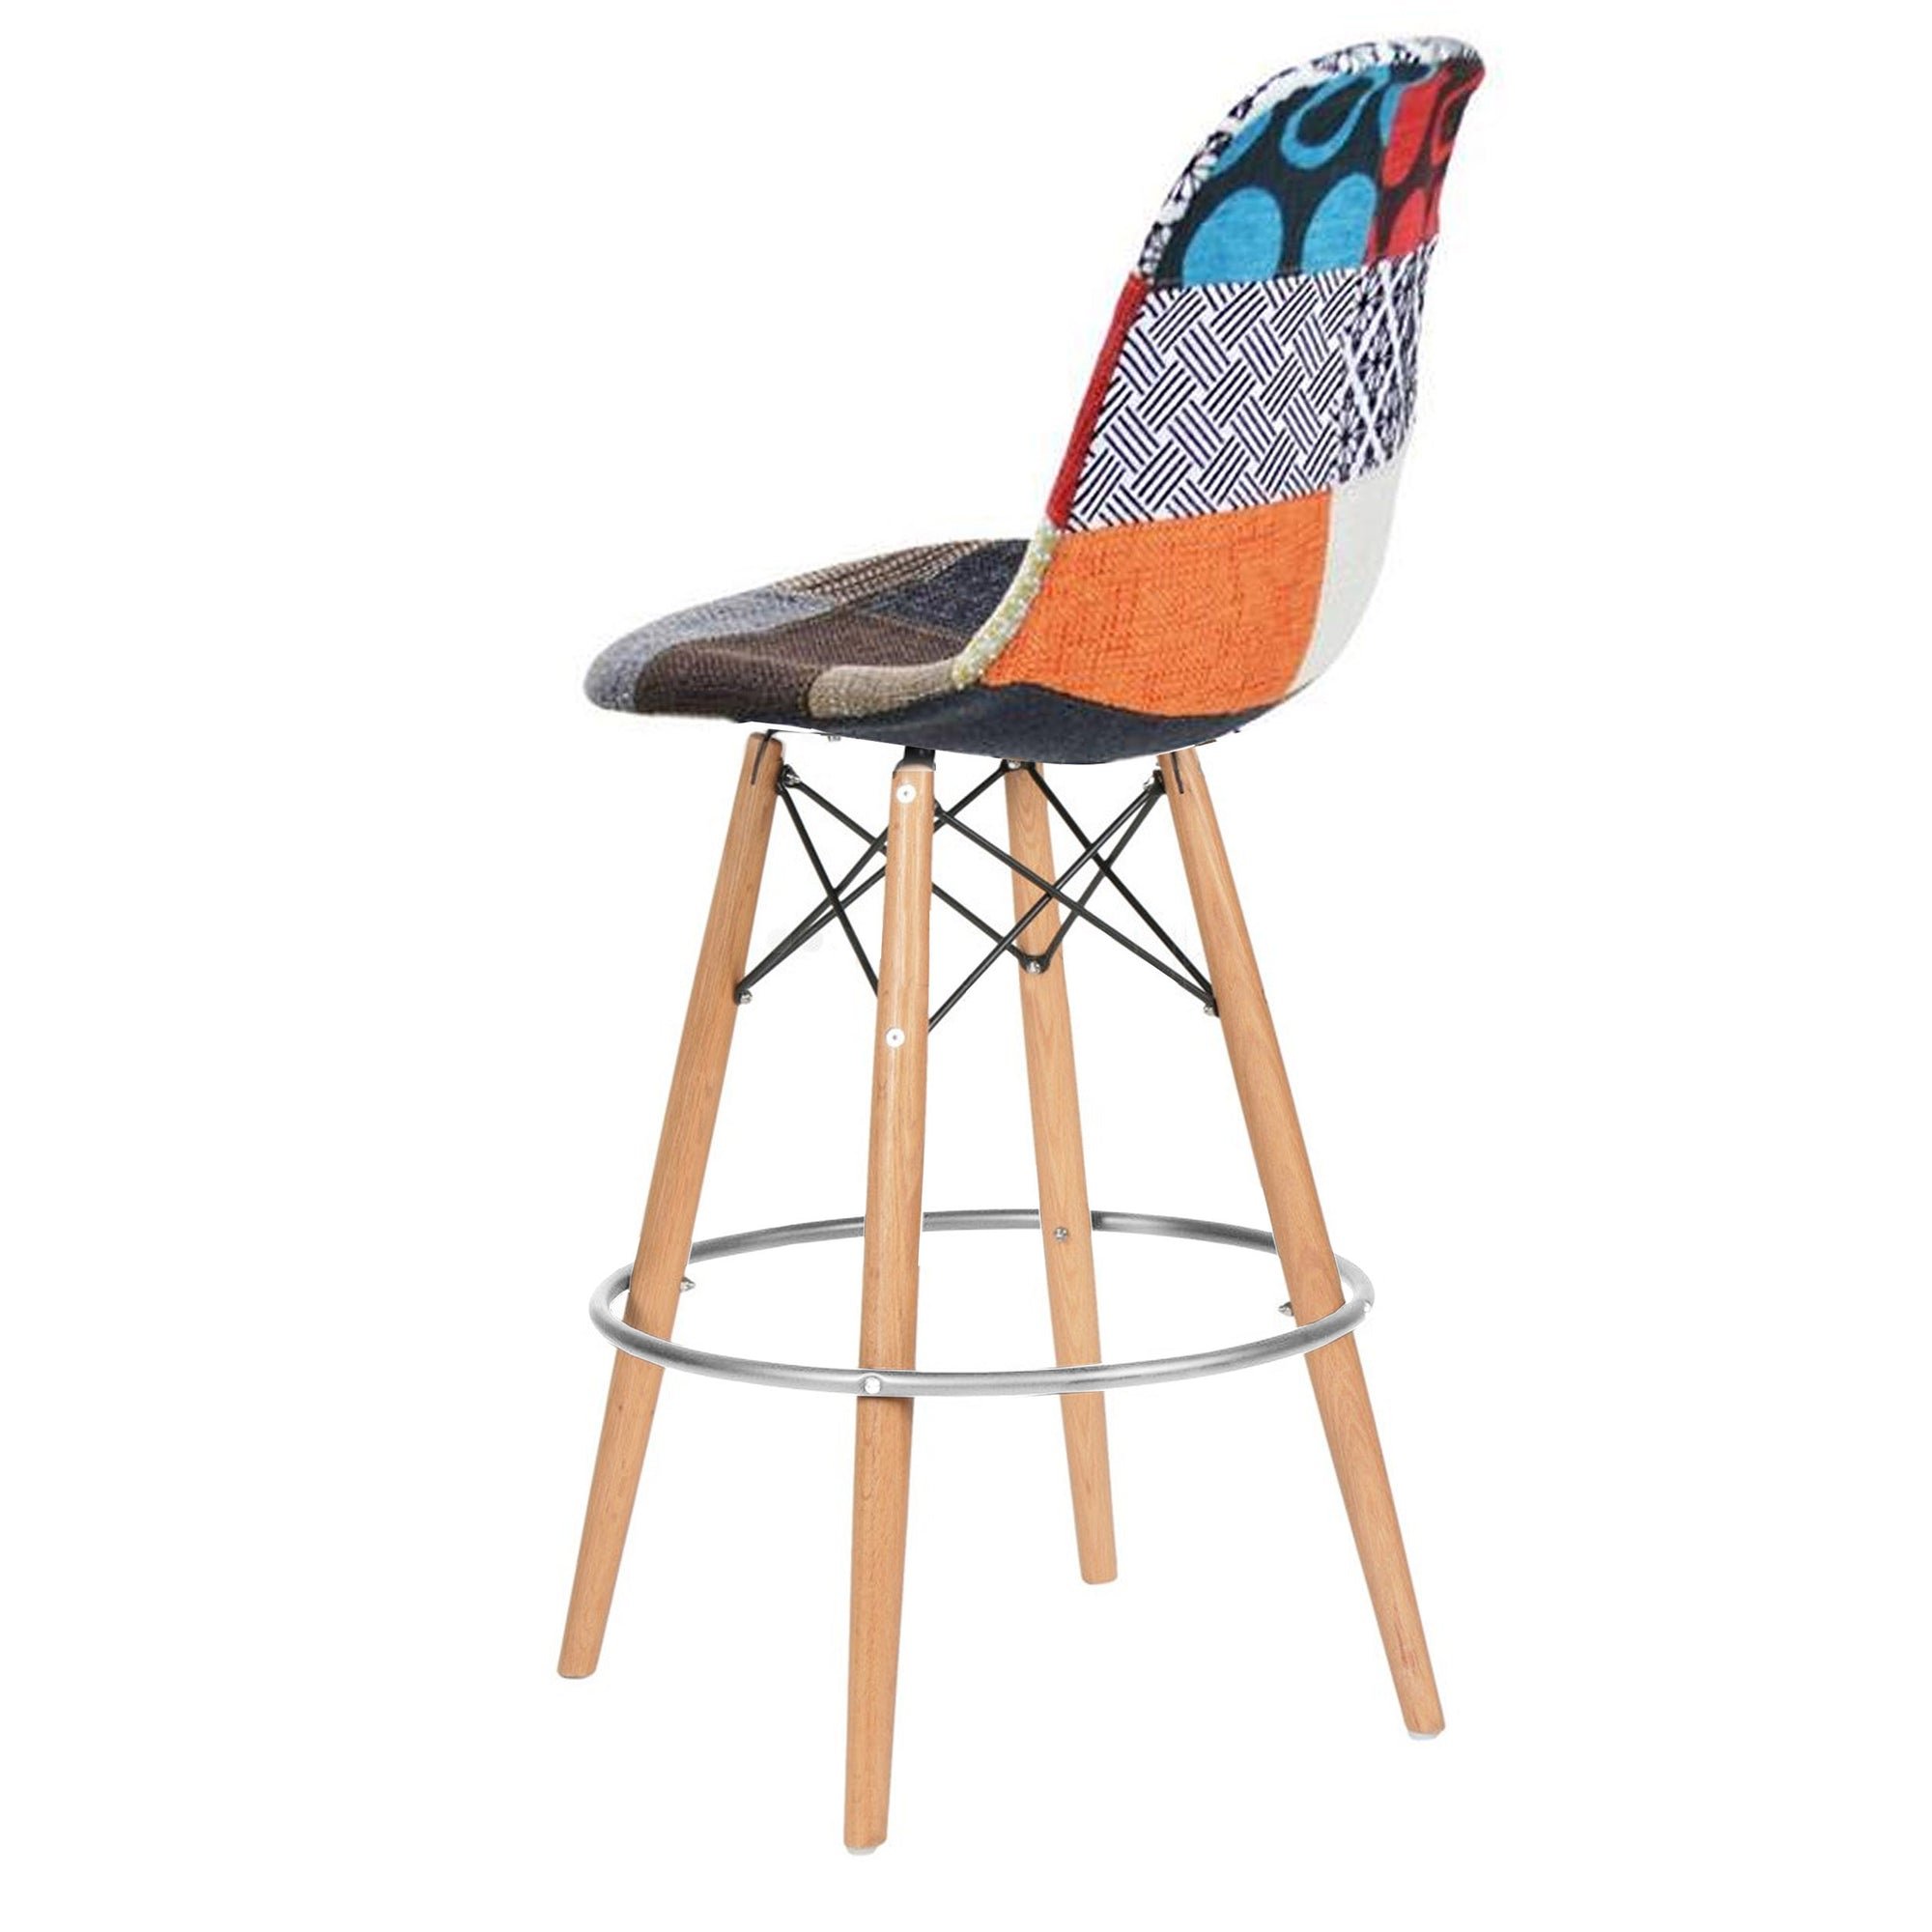 BarChair-Fabric- MSB0018F -  كرسي - شريط - قماش - Shop Online Furniture and Home Decor Store in Dubai, UAE at ebarza